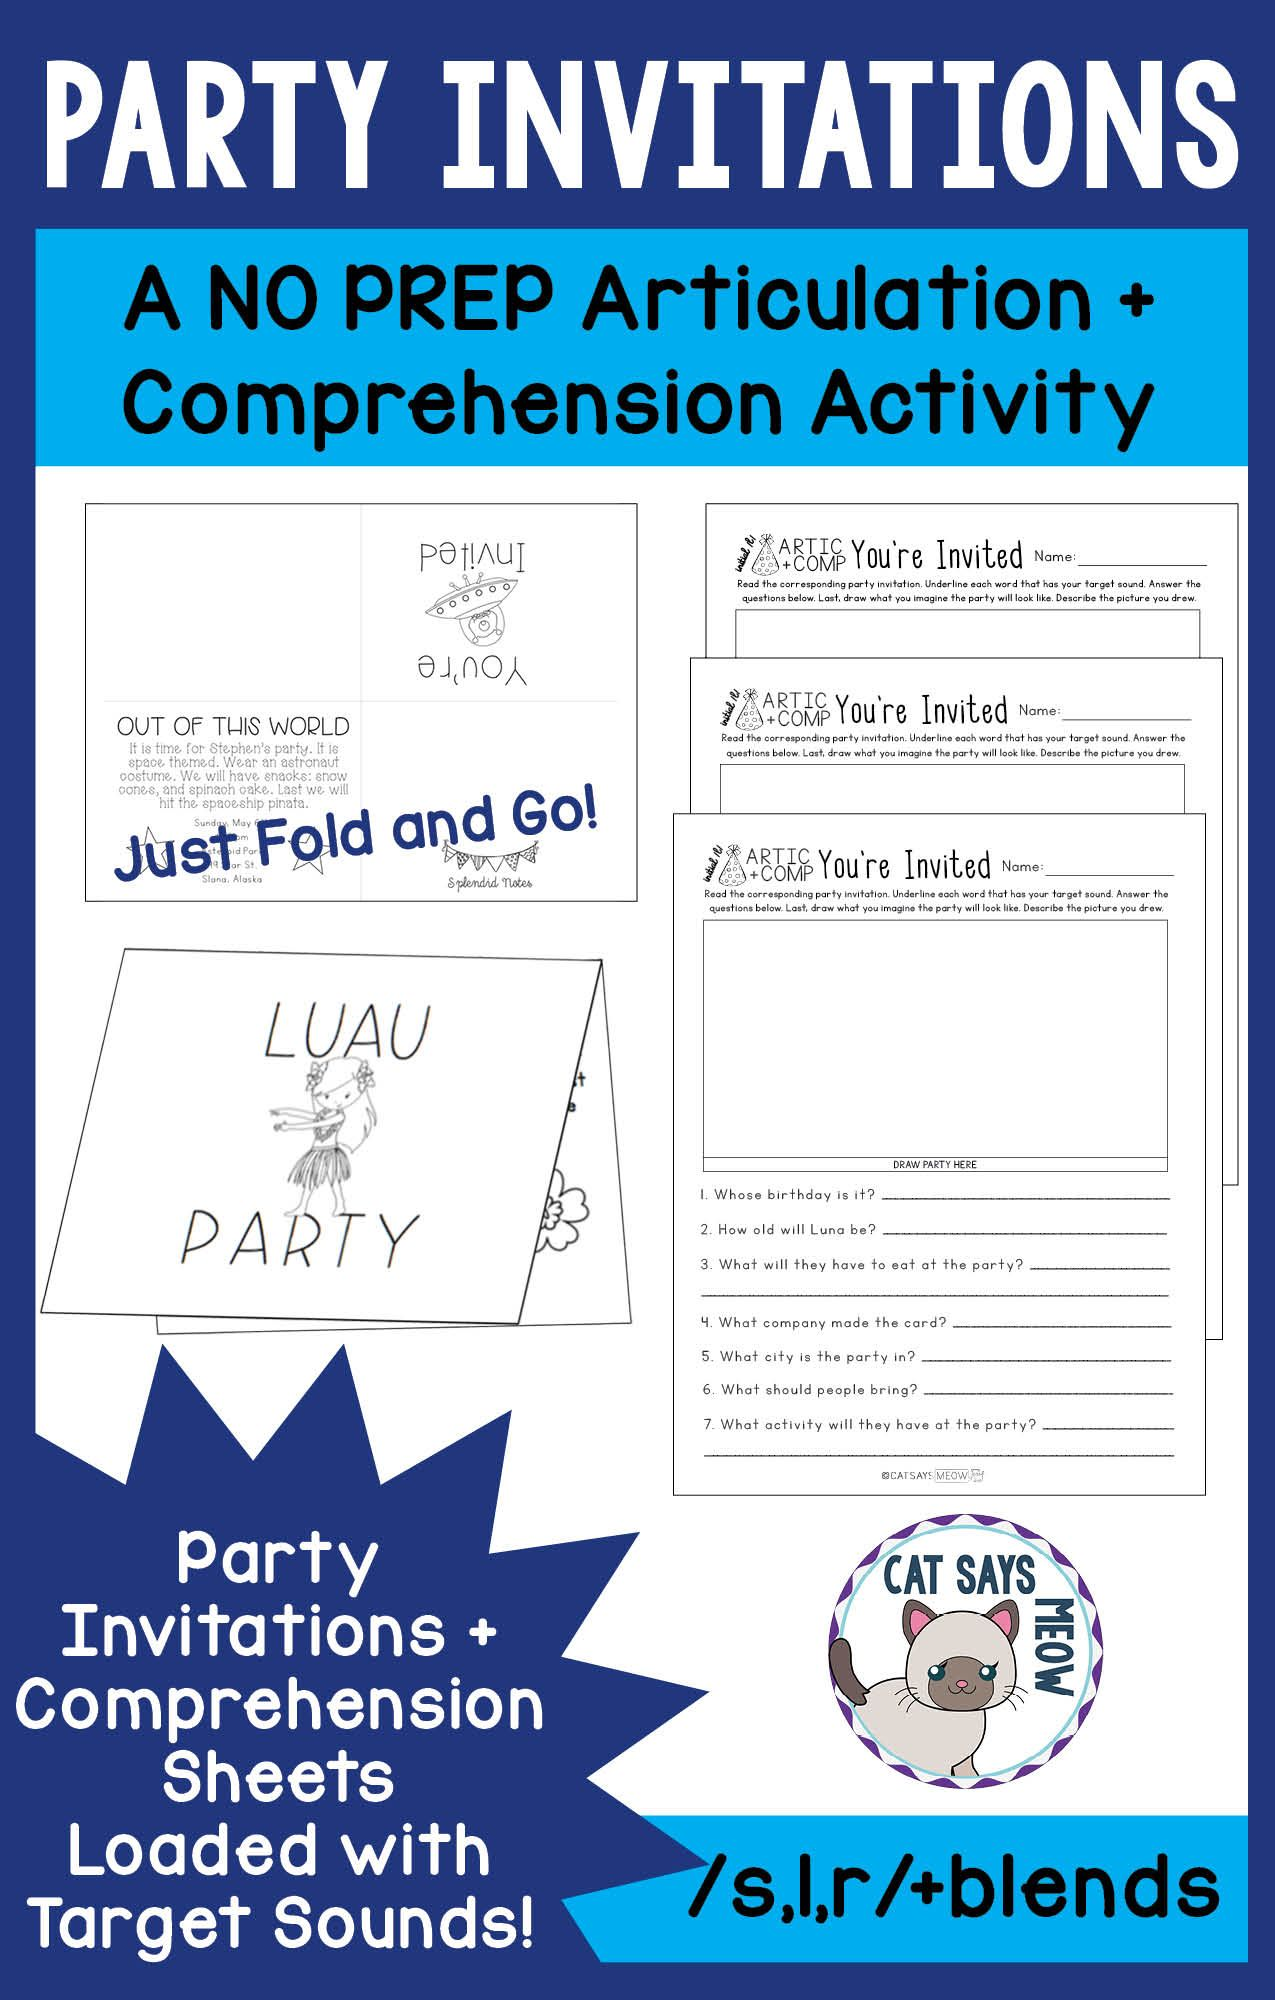 Party Invitations A No Prep Artic Reading Comprehension